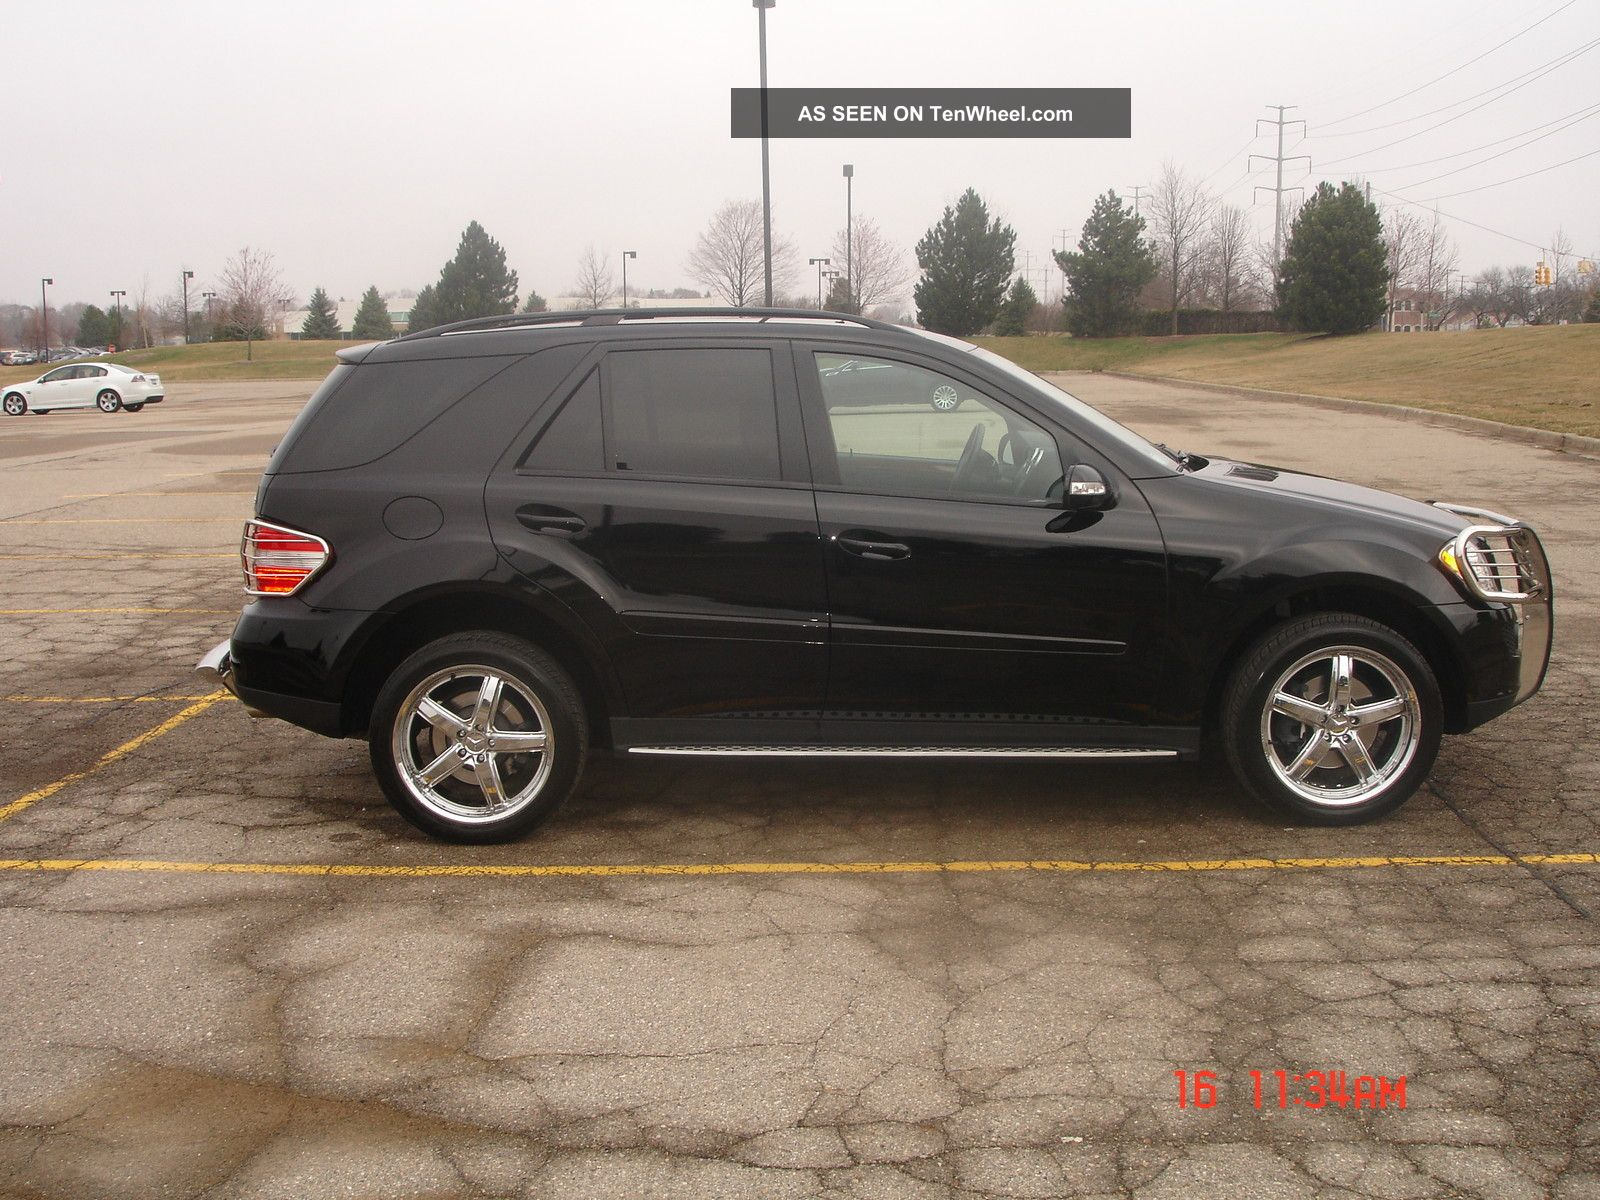 2007 mercedes benz ml350 black suv 4 door 3 5l 20 for 2007 mercedes benz suv